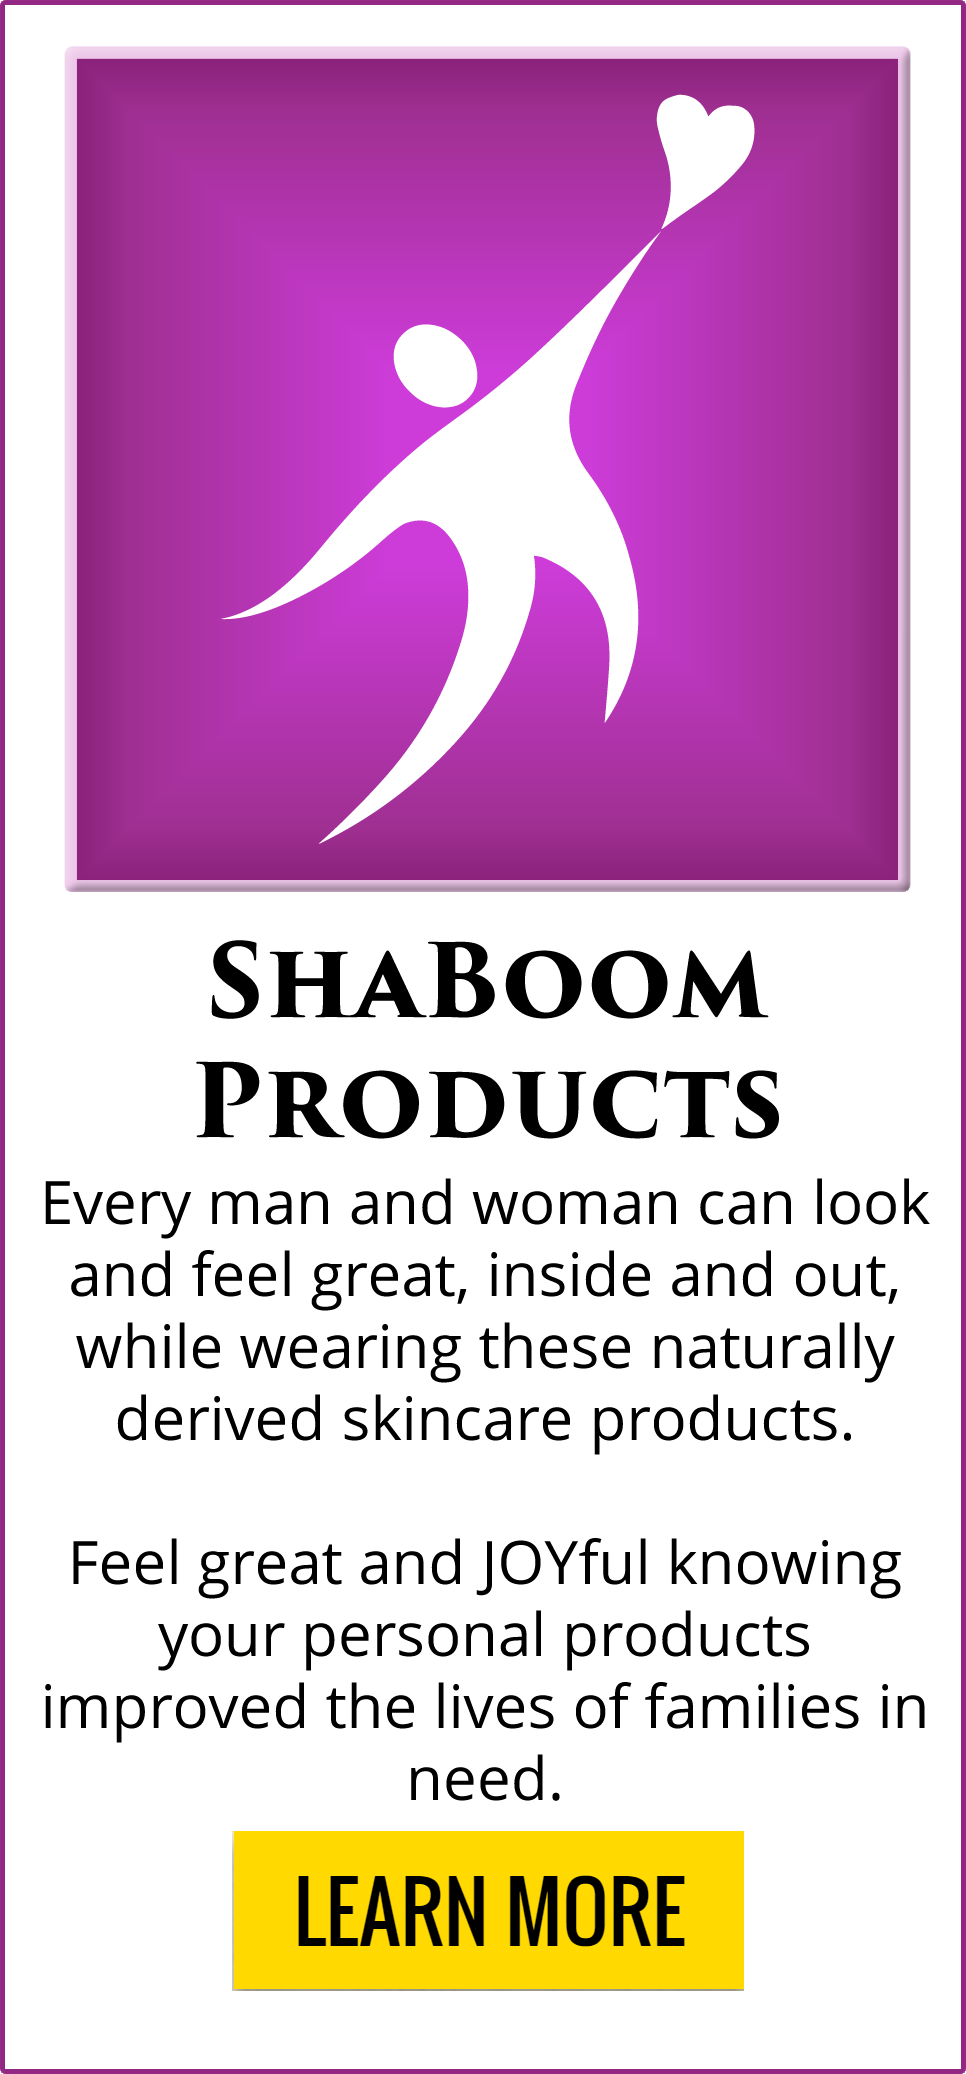 ShaBoom Products created to help OneMama and Fighting for the JOY of Others!